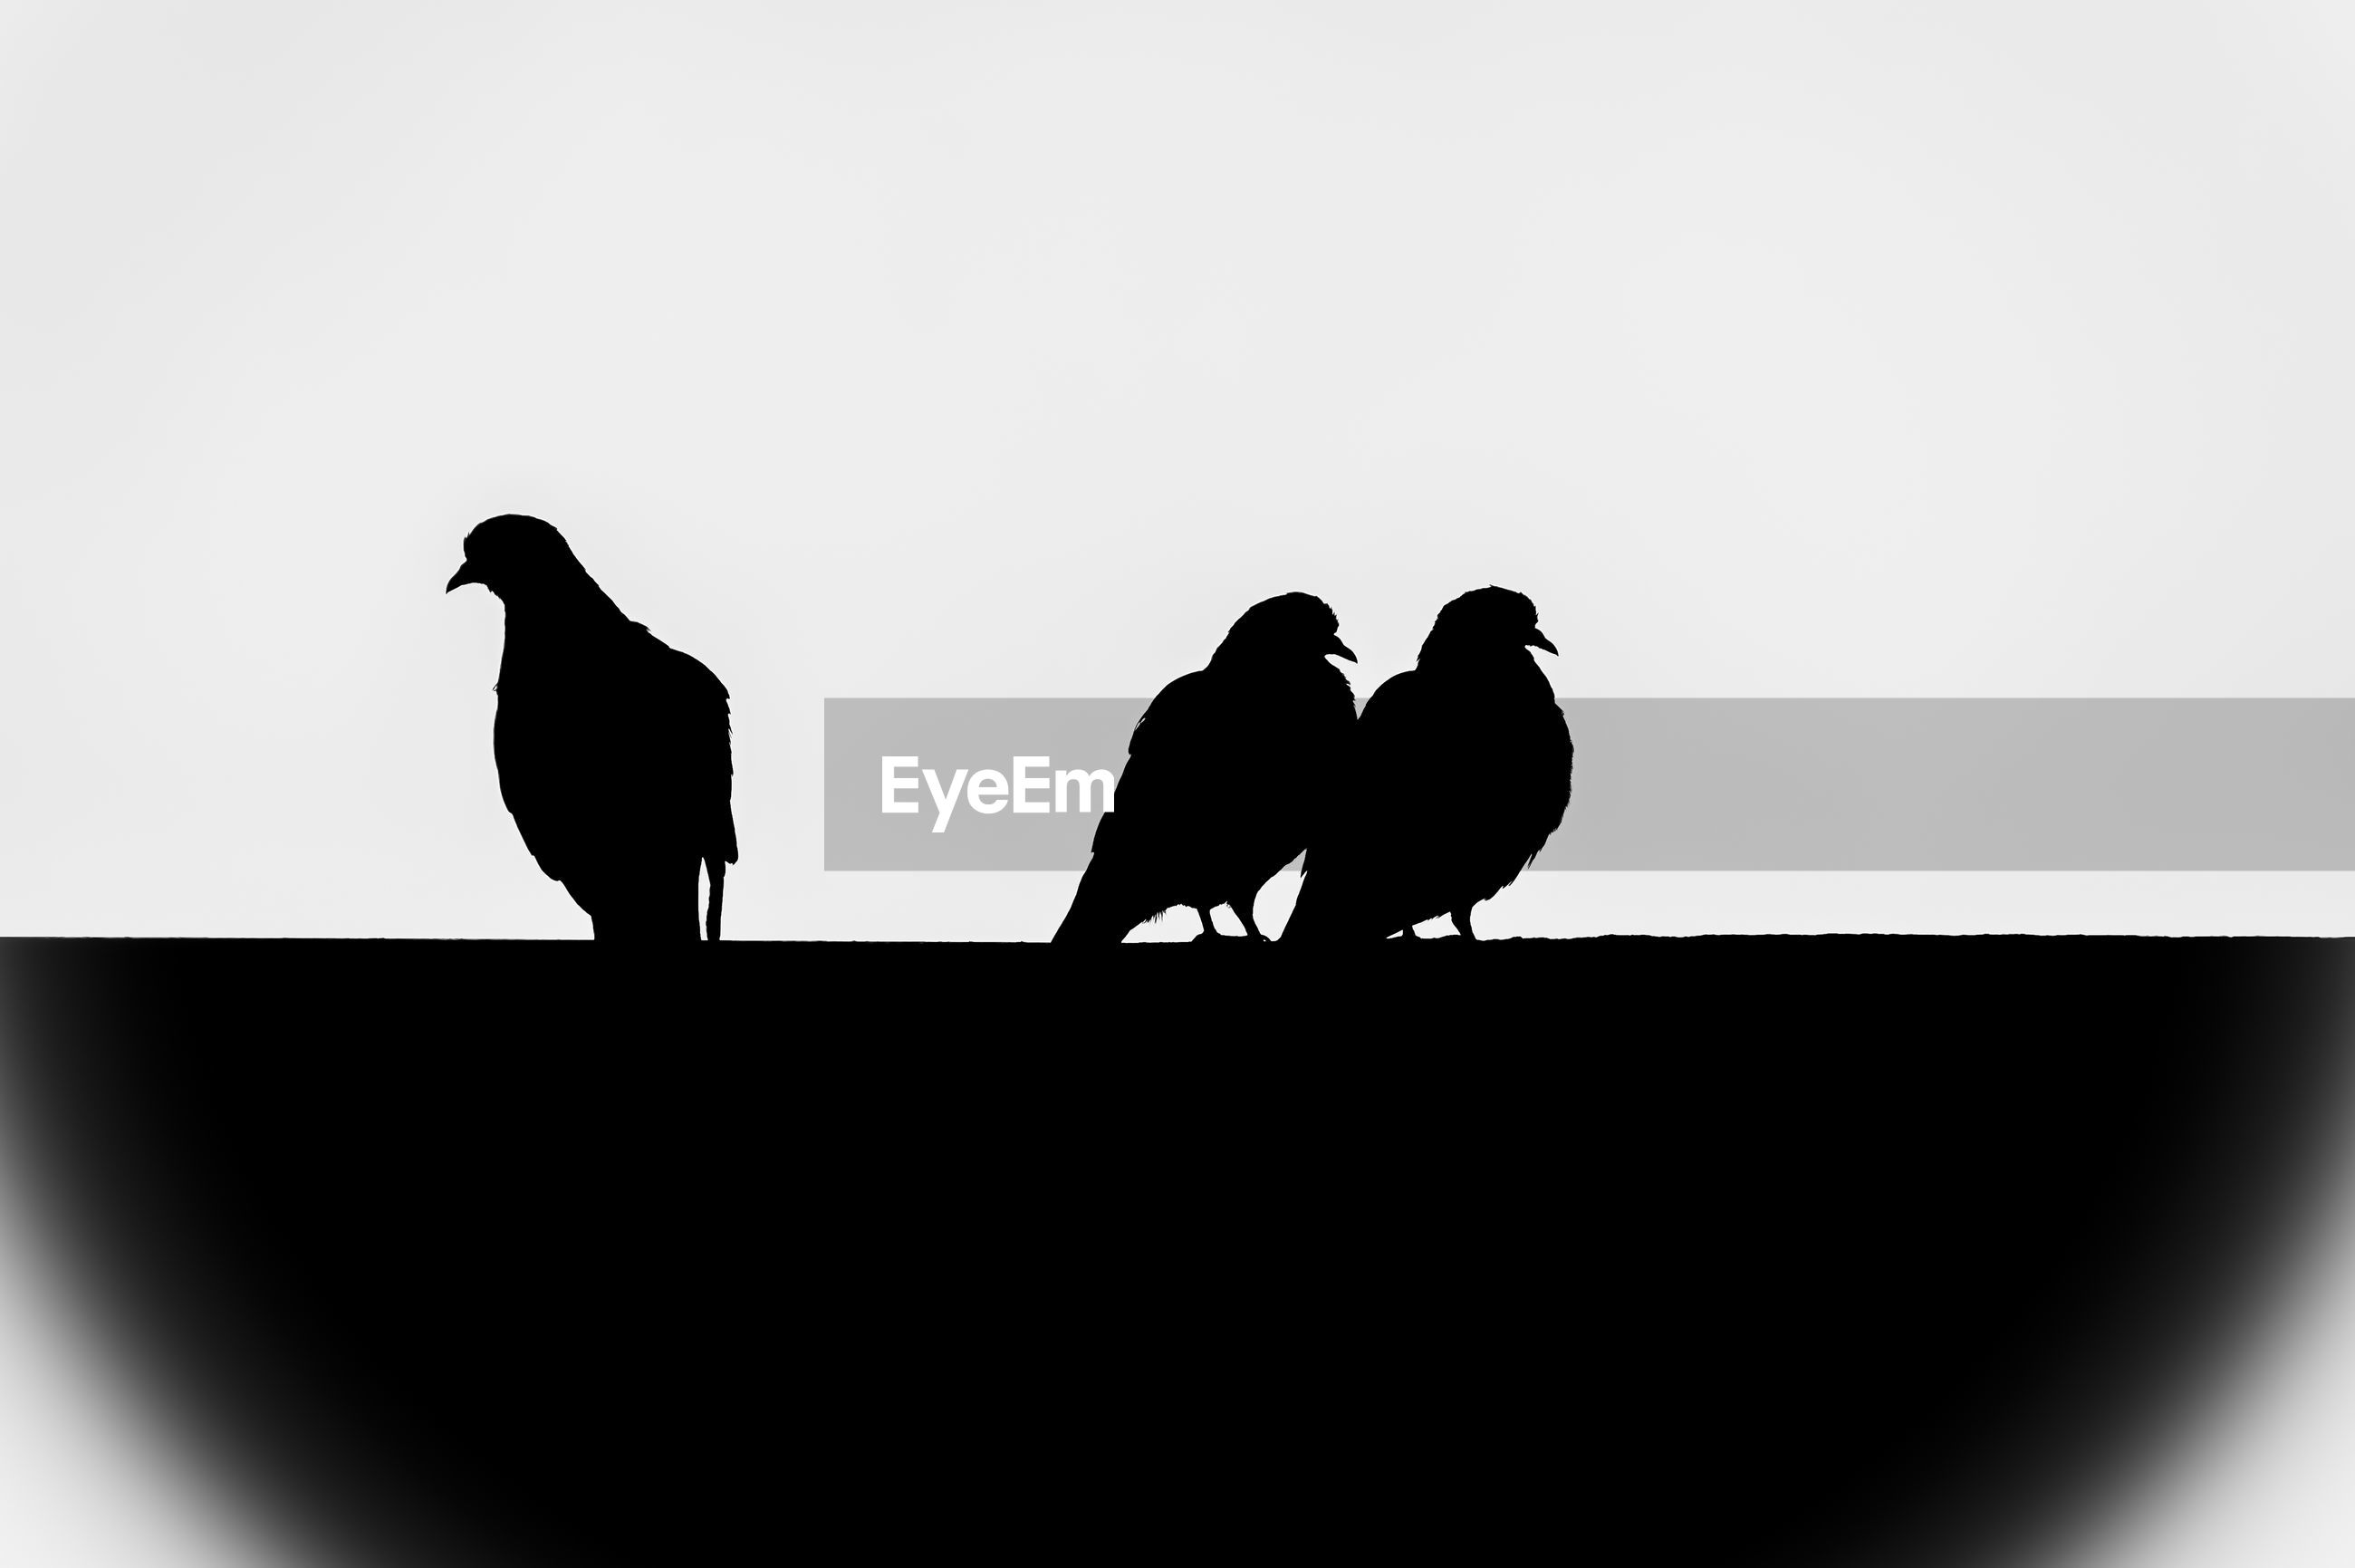 Low angle view of silhouette birds against clear sky